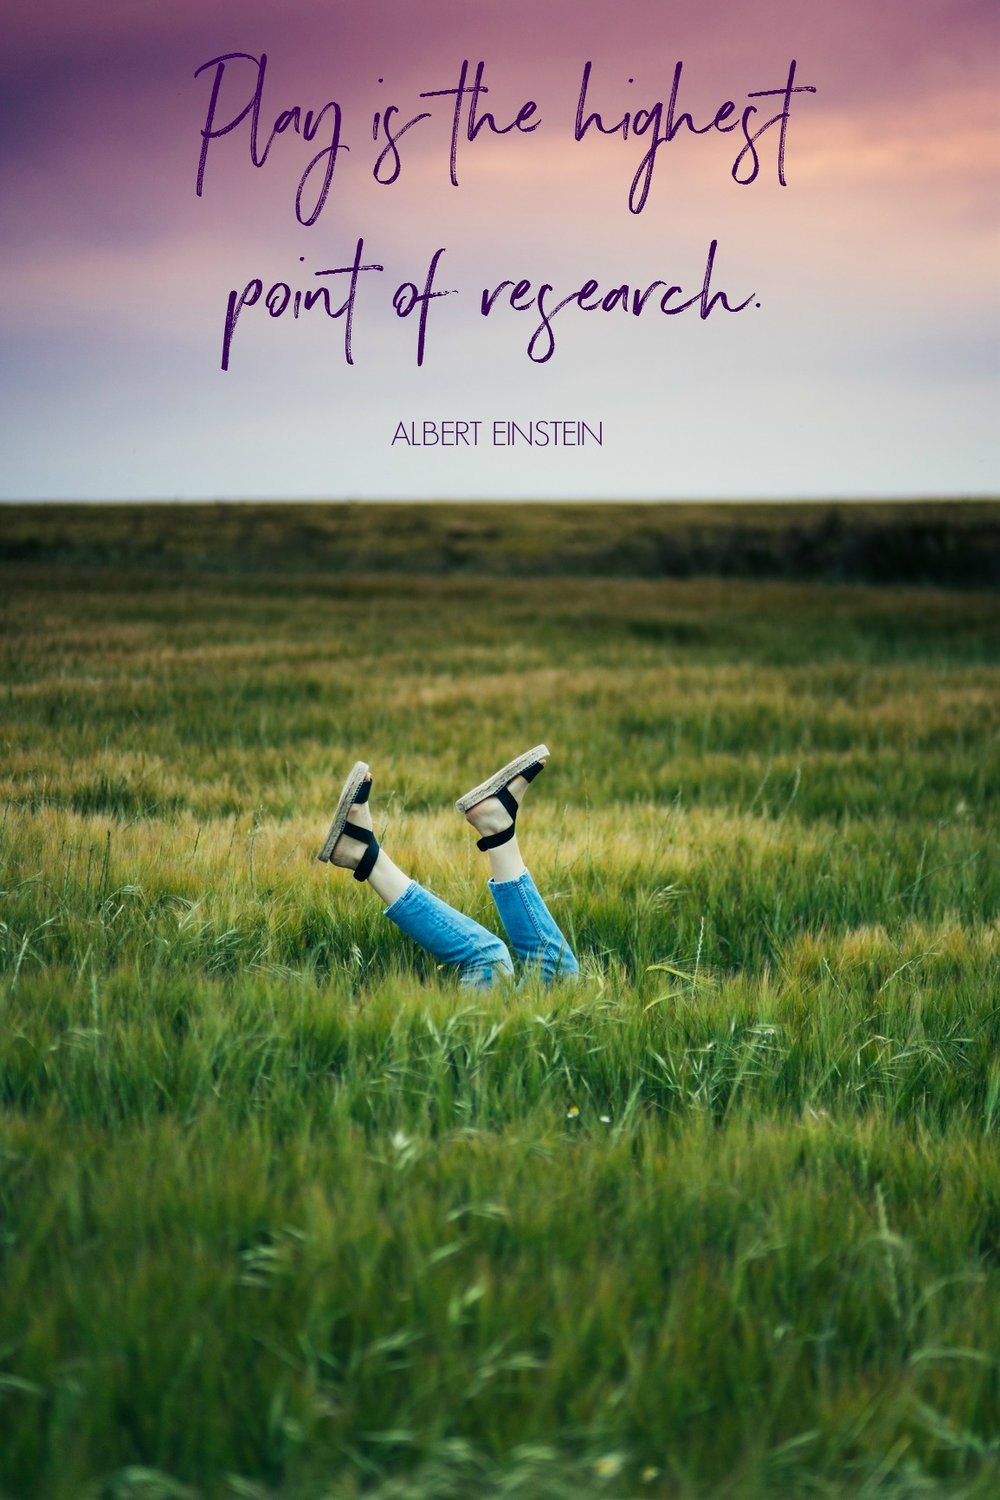 Play is the highest point of research. Albert Einstein. Picture quote from Circle of Daydreams. www.circleofdaydreams.com